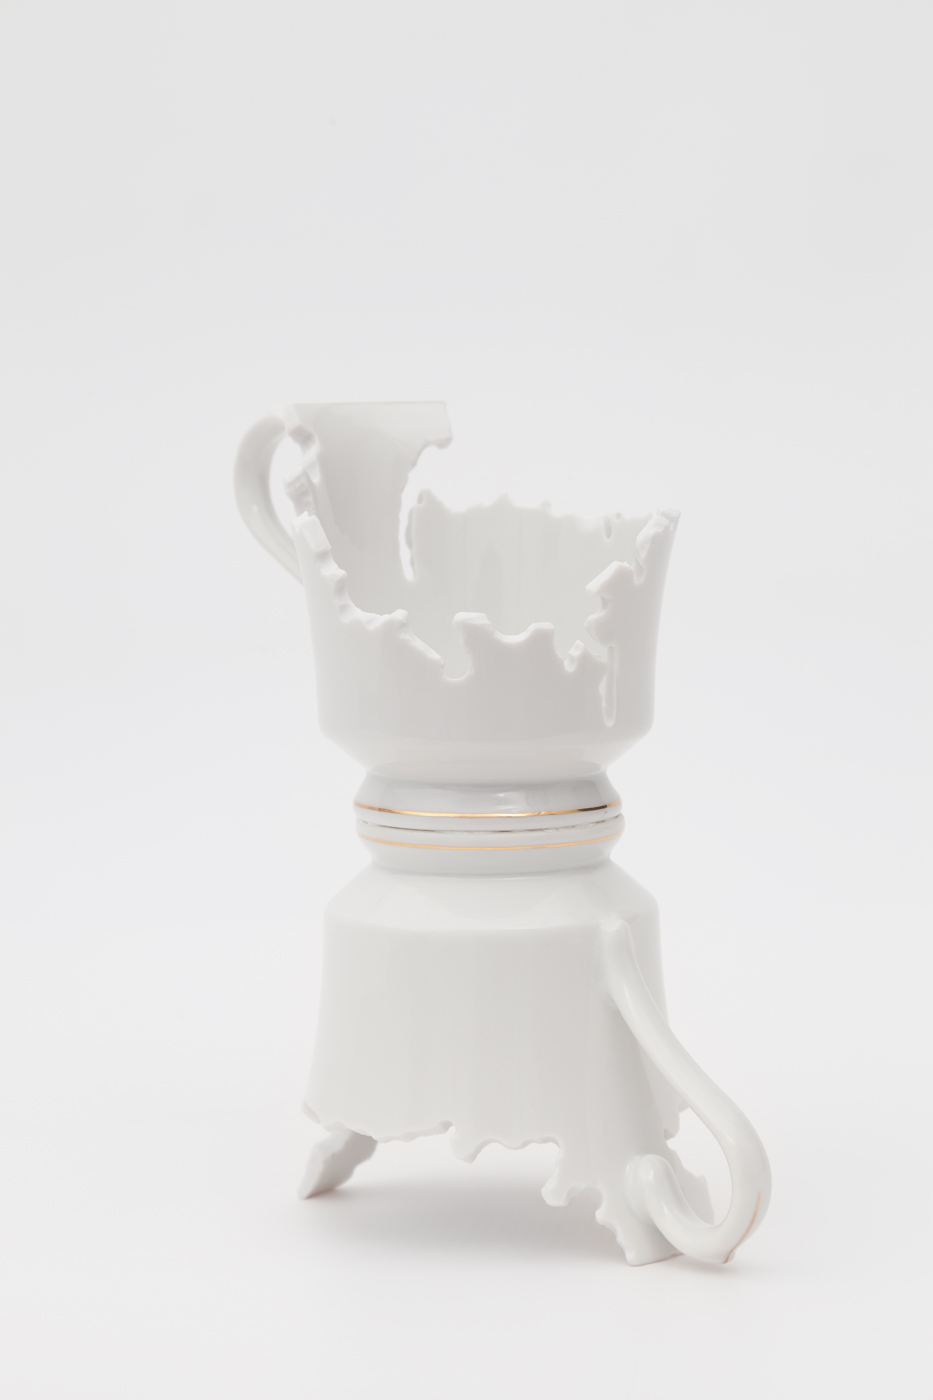 Elizabeth Alexander,  Heirloom: Holly II , Hand cut found porcelain